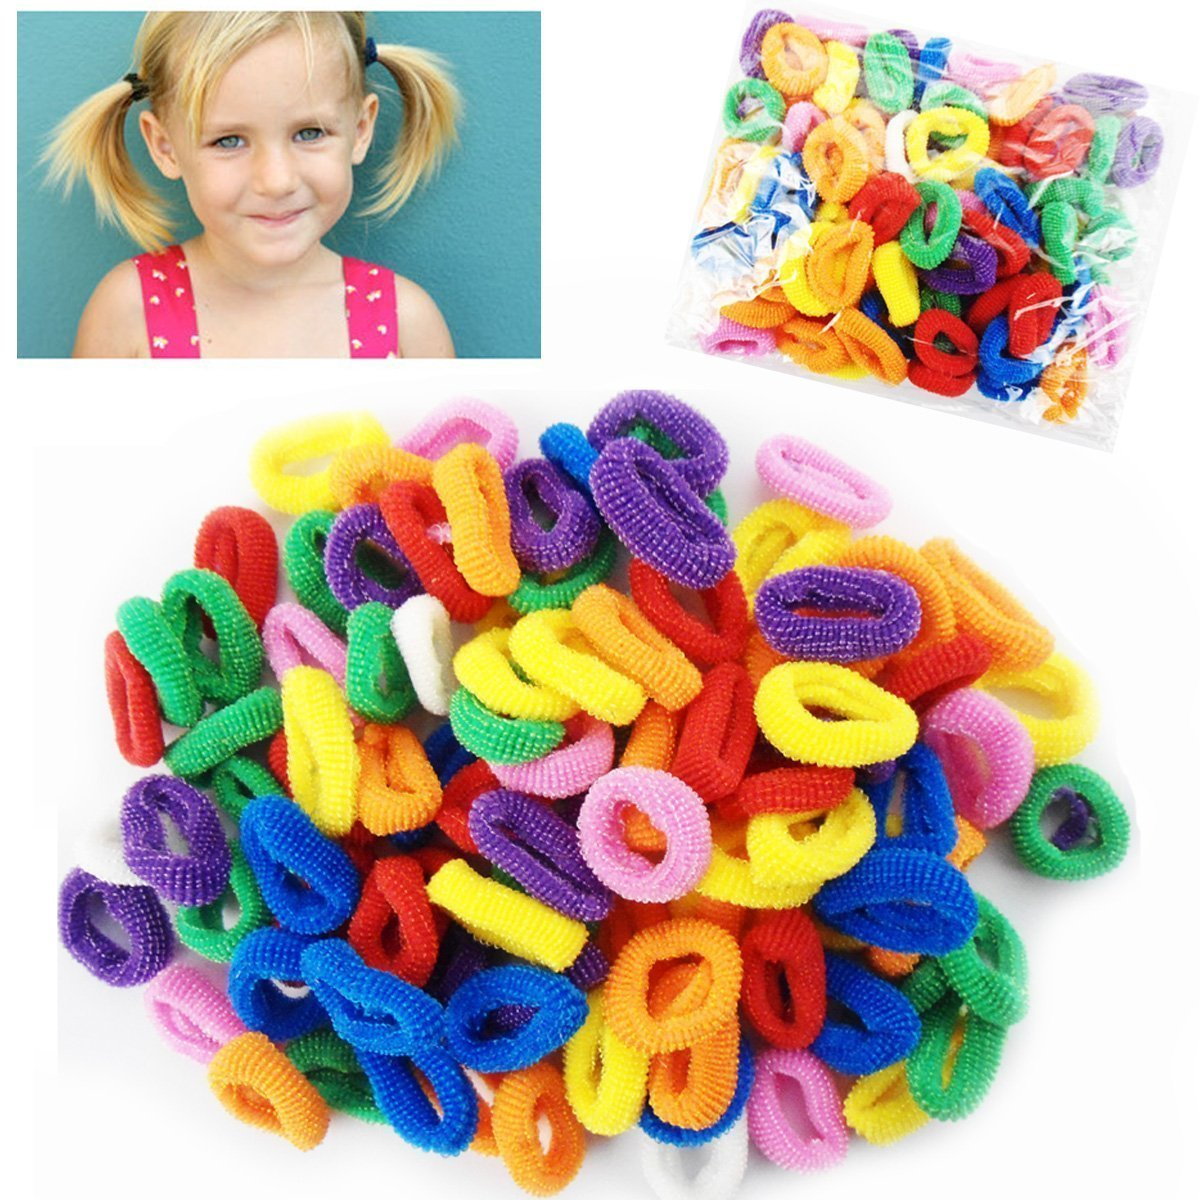 Allsorts® 100 Mini Bright Hair Ponios No Snag No Metal Hair Bobbles Soft Hair Accessory